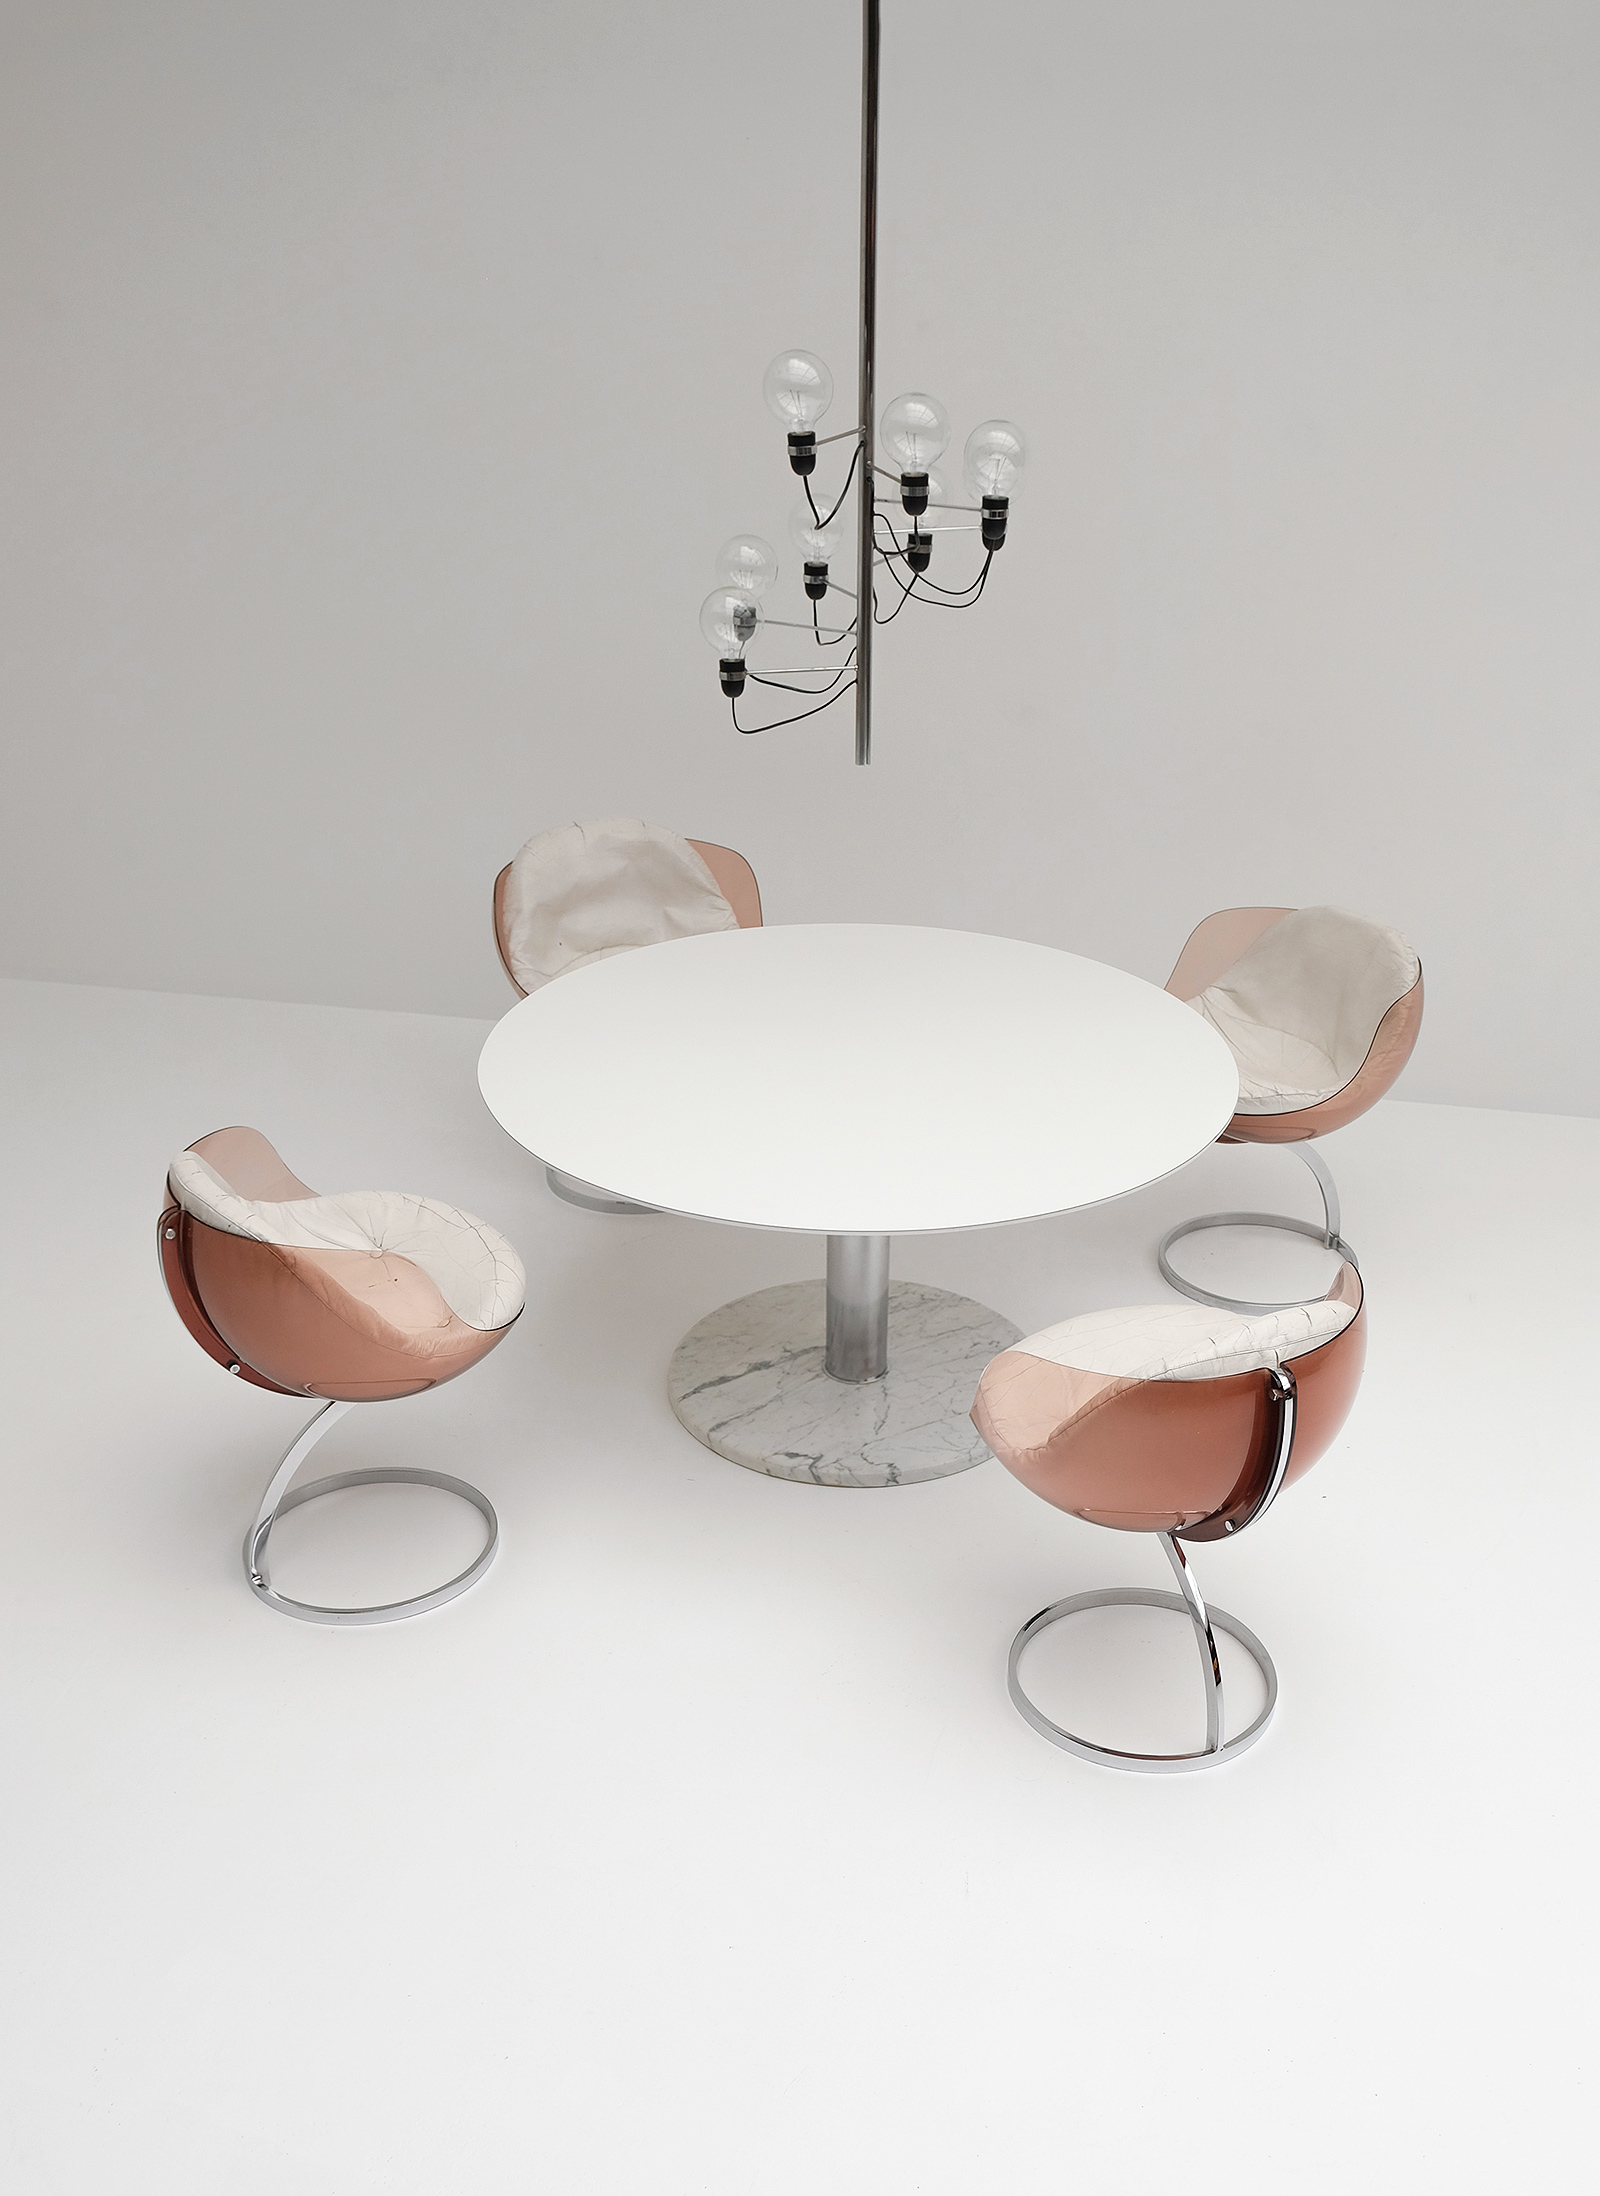 Boris Tabacoff Sphere Chairs Mobillier Modulaire Modernimage 3